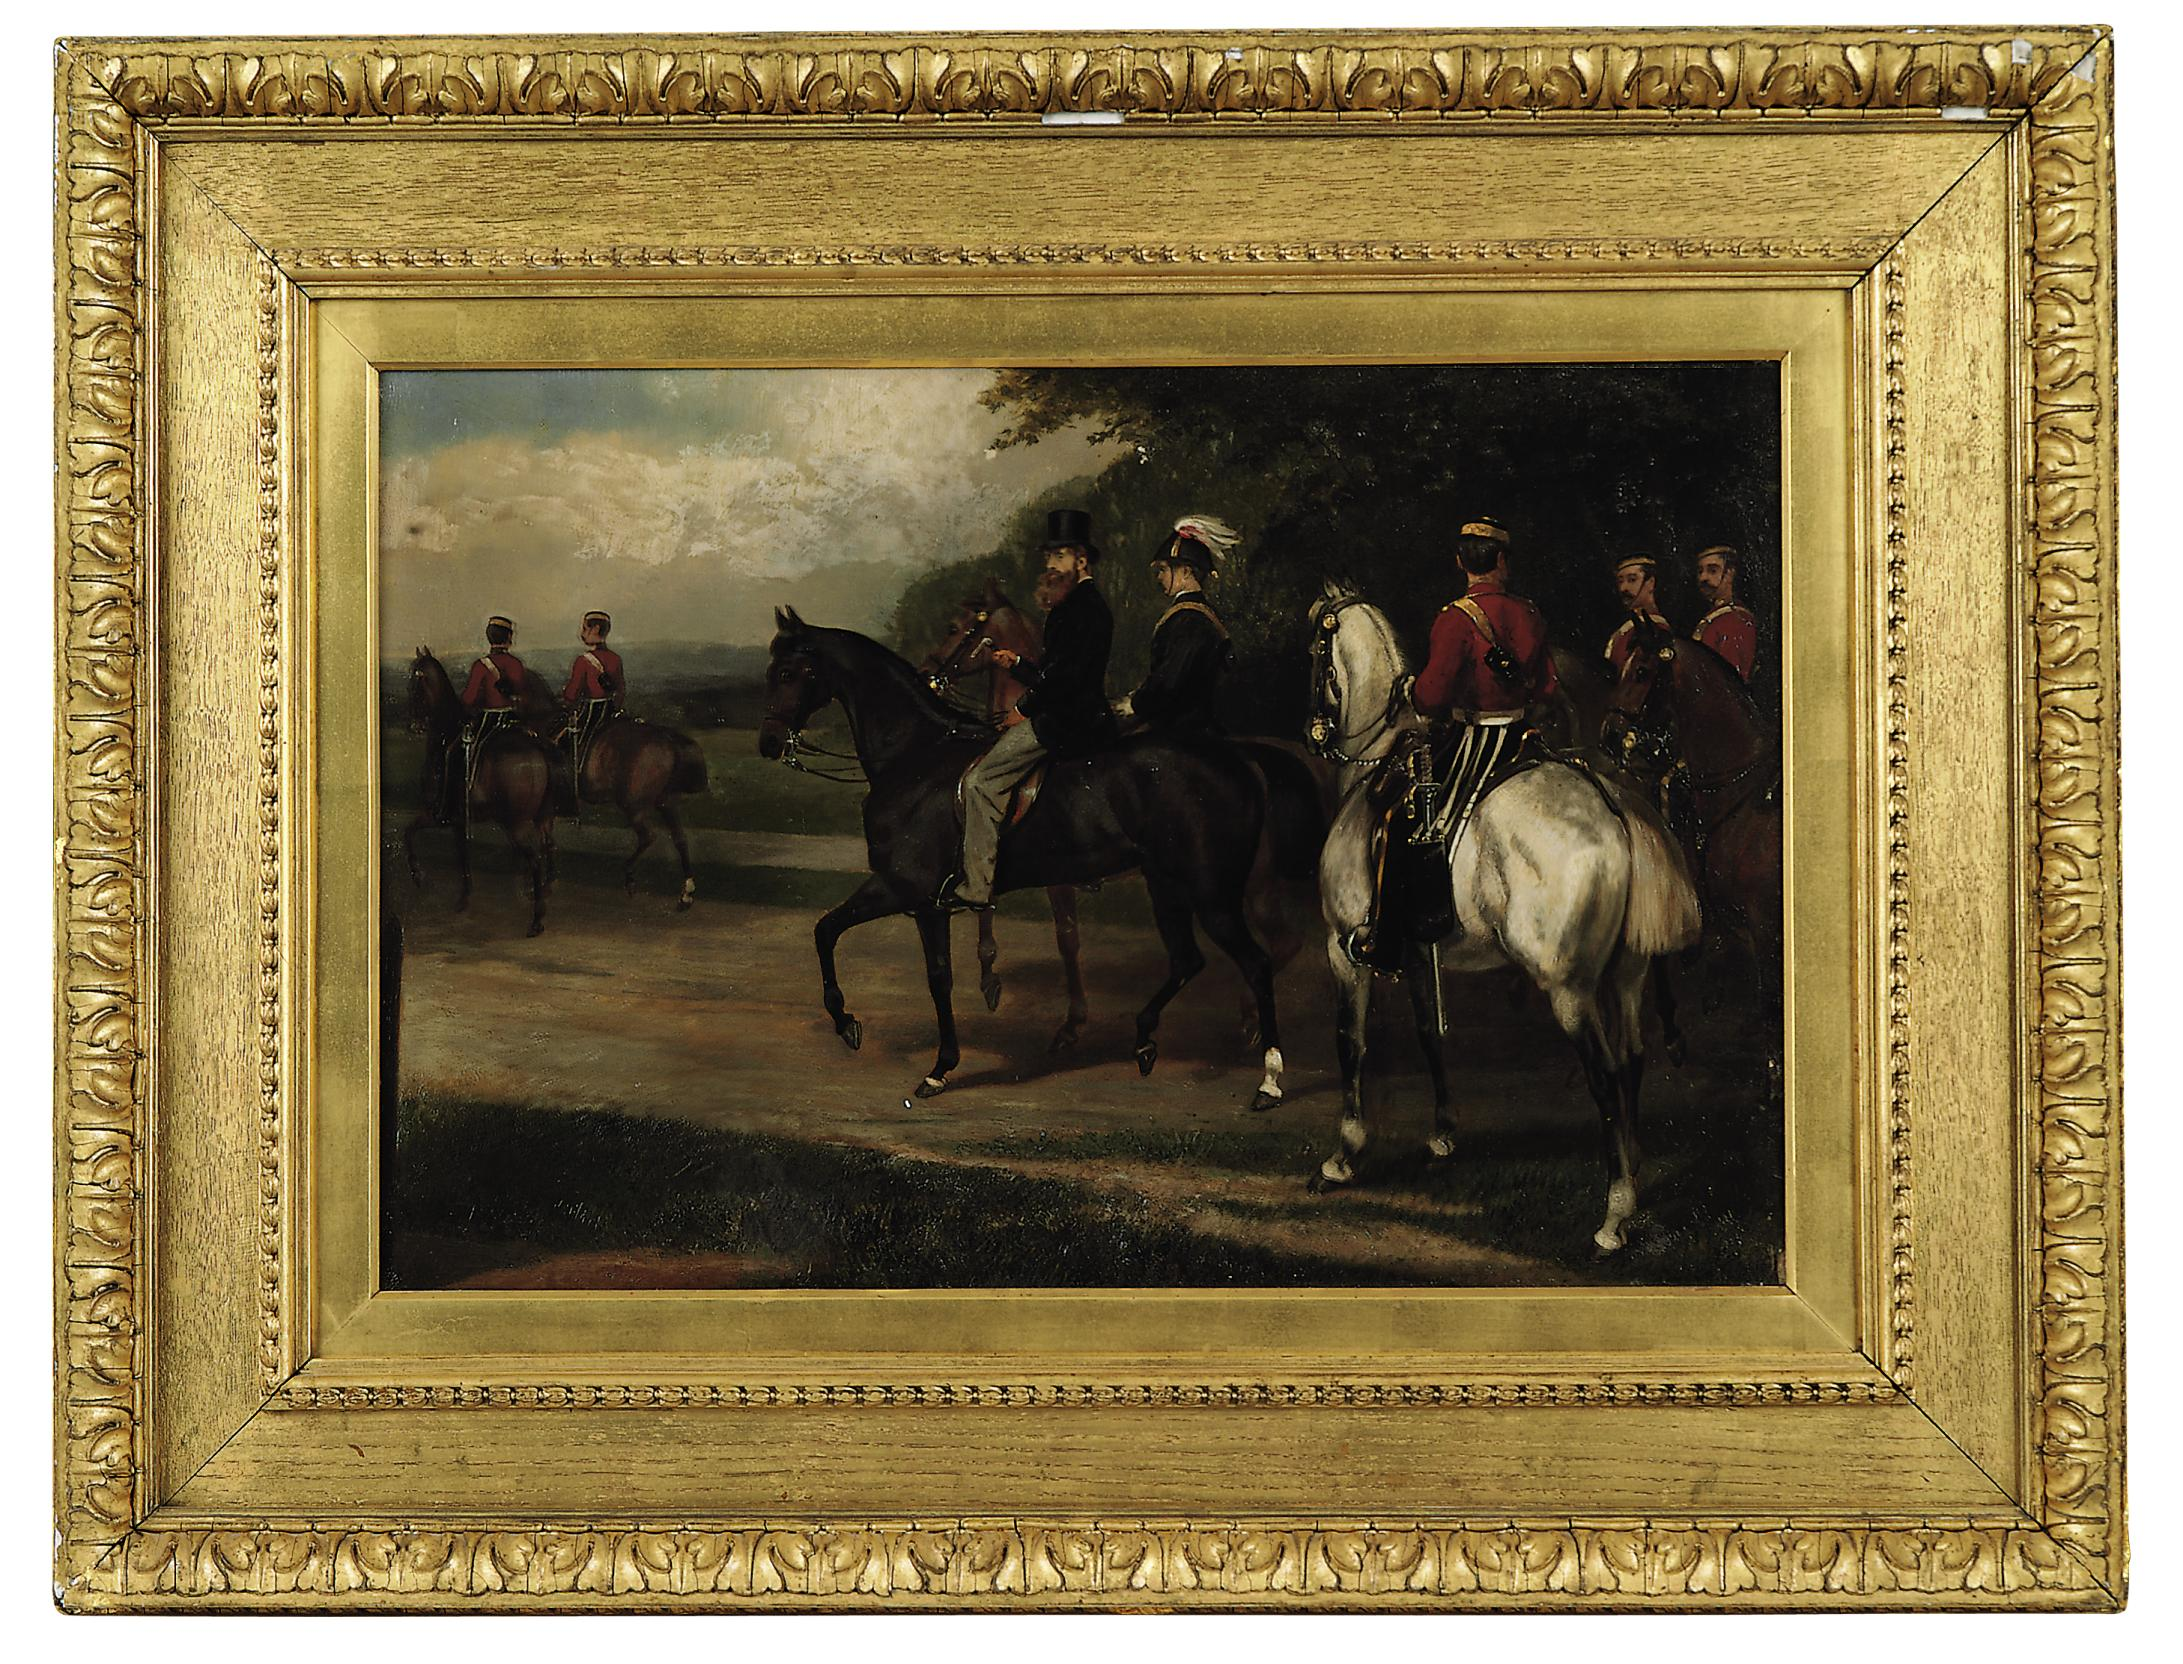 Portrait of John Poyntz, 5th Earl Spencer (1835-1910) riding with troopers in Dublin